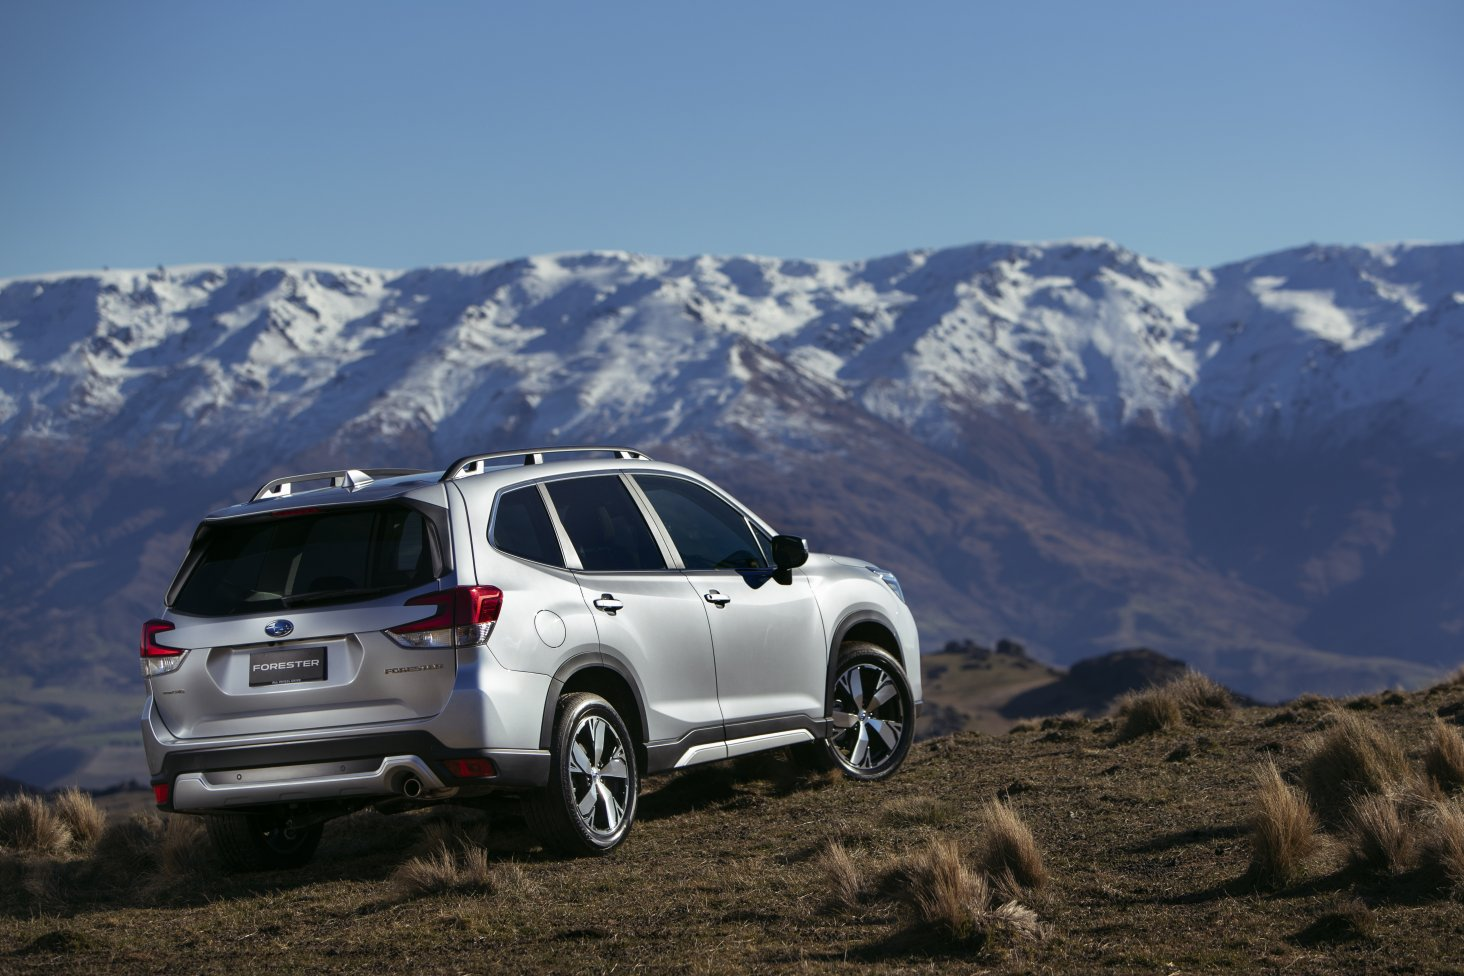 The Subaru Forester SUV is more than capable off-road with 220mm of ground clearance.